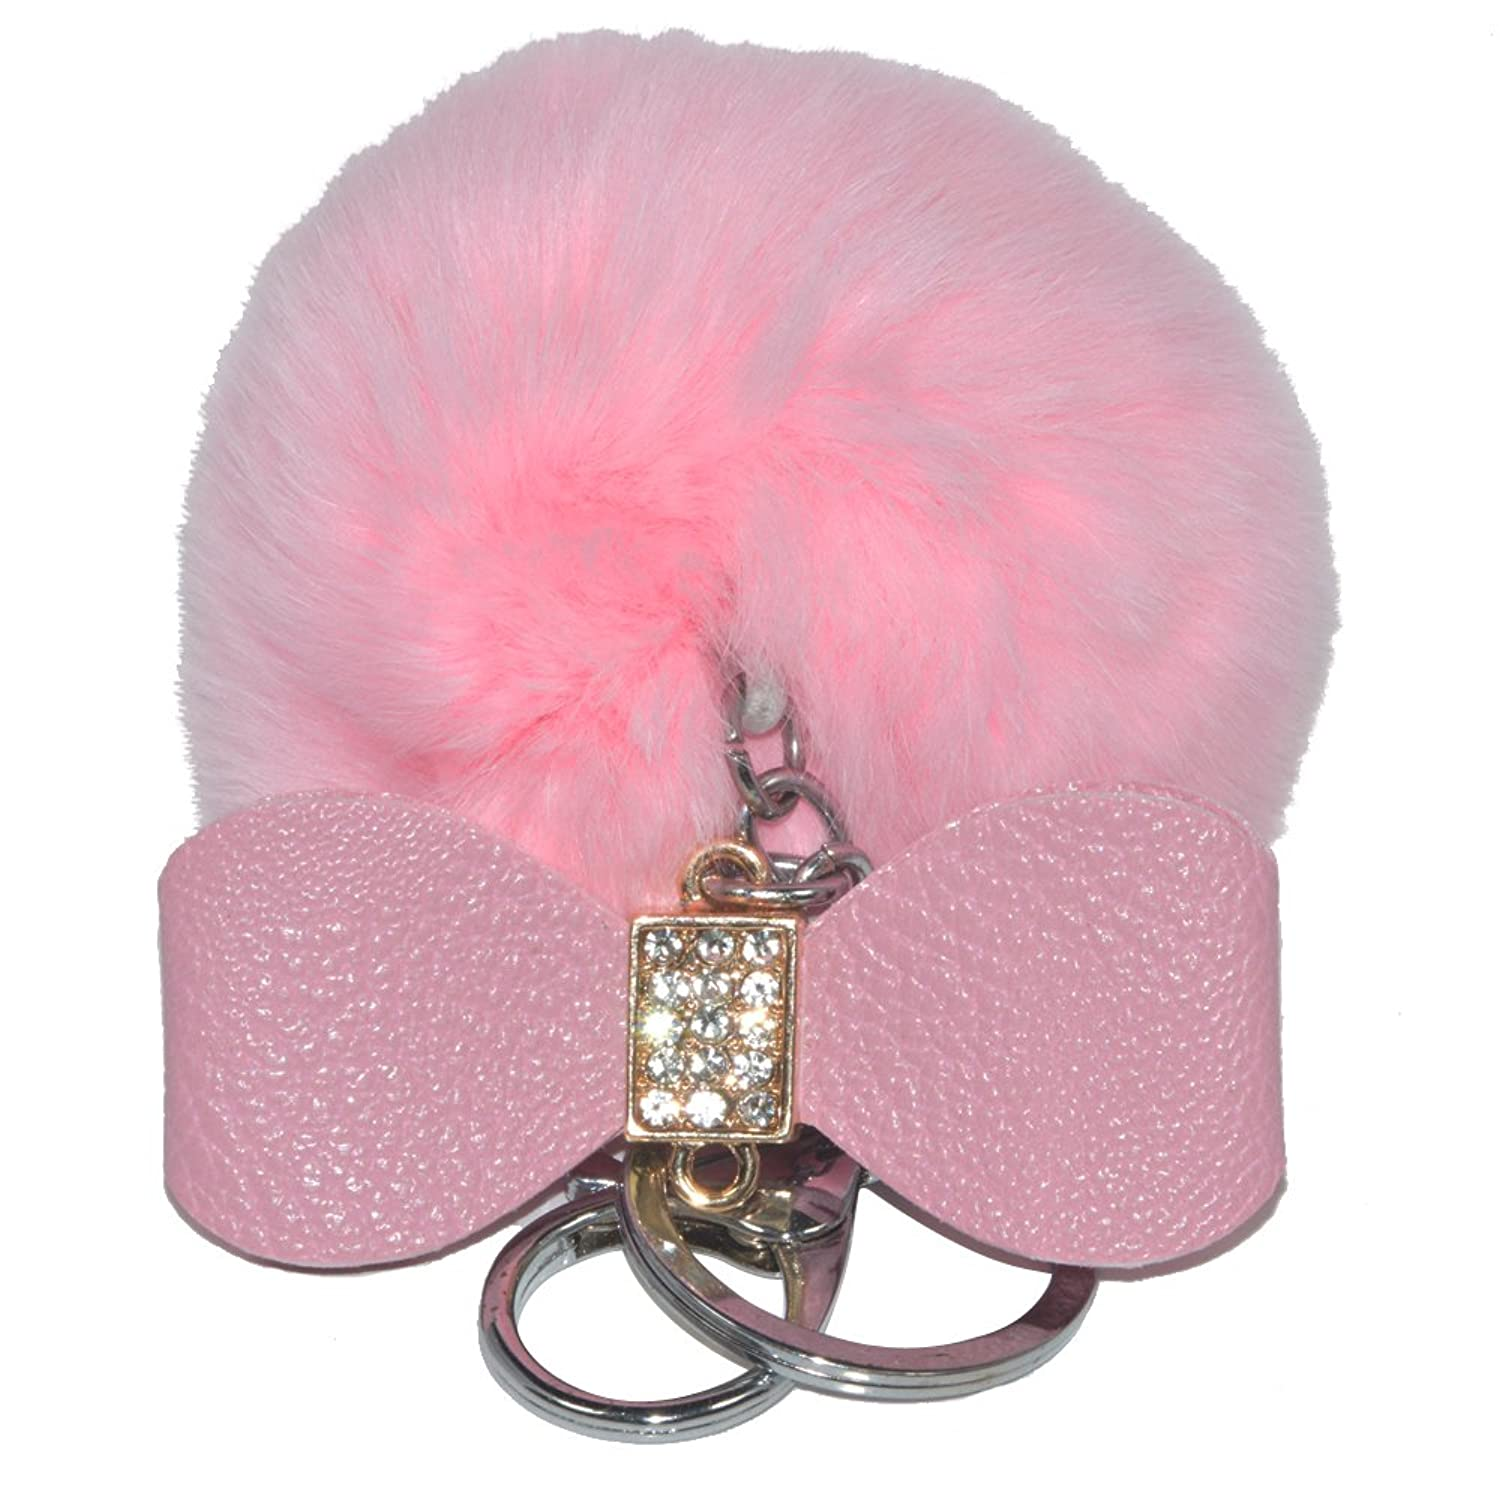 DongStar, Key chain with Cute Artificial Rabbit Fully Fur Pom Pom Baby Pink Ball or Bag Purse Charm